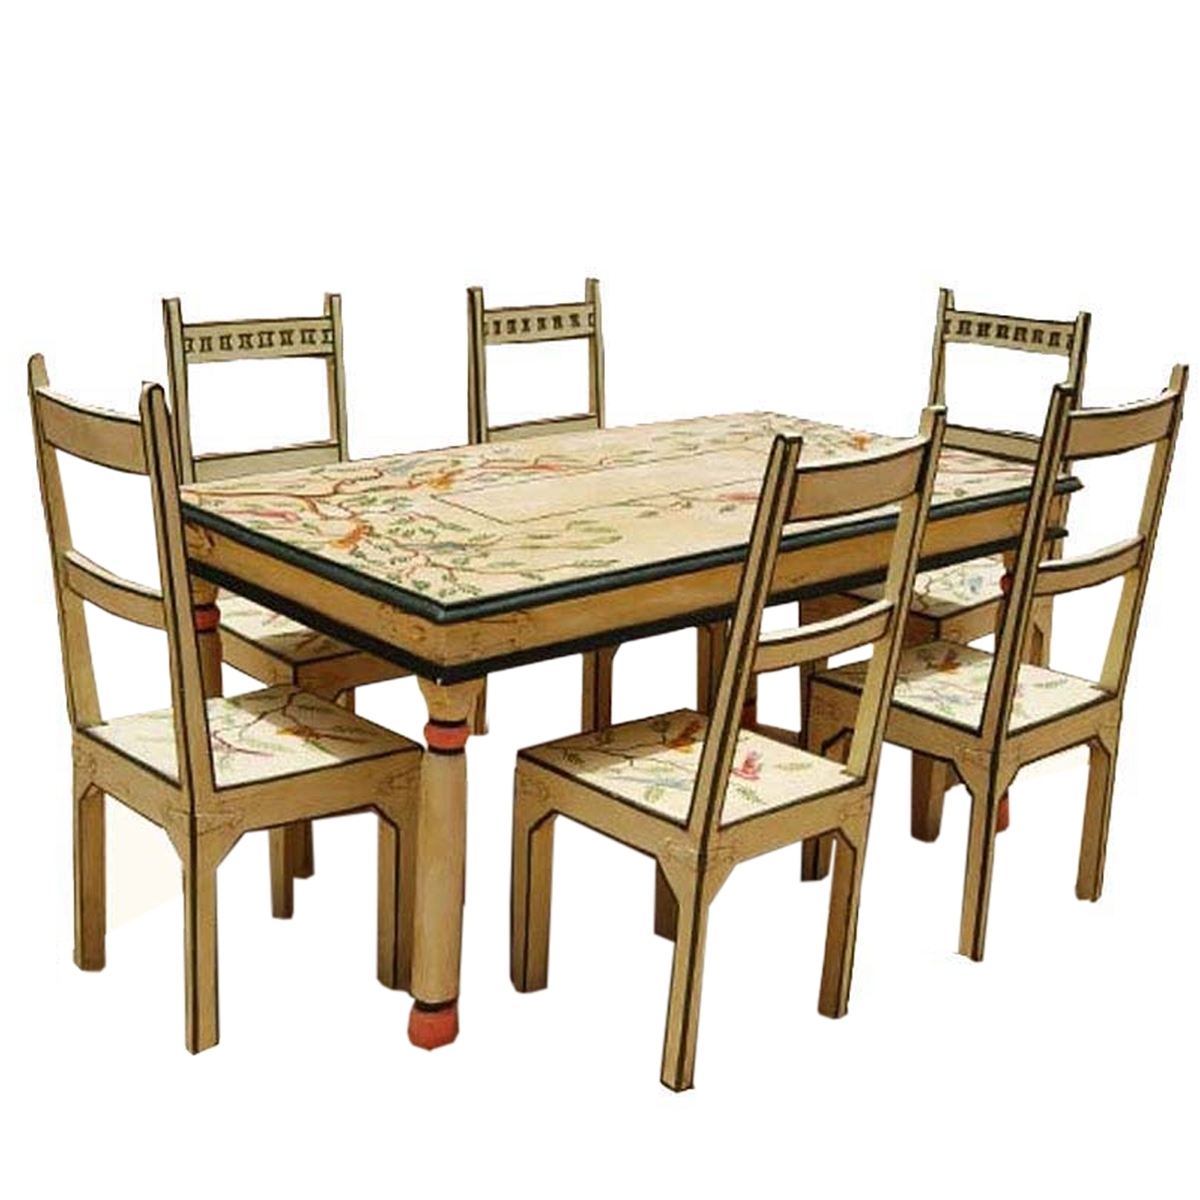 Painted Dining Tables Pertaining To Widely Used Birds Of Paradise Hand Painted 7Pc Country Dining Table And Chair Set (View 18 of 25)